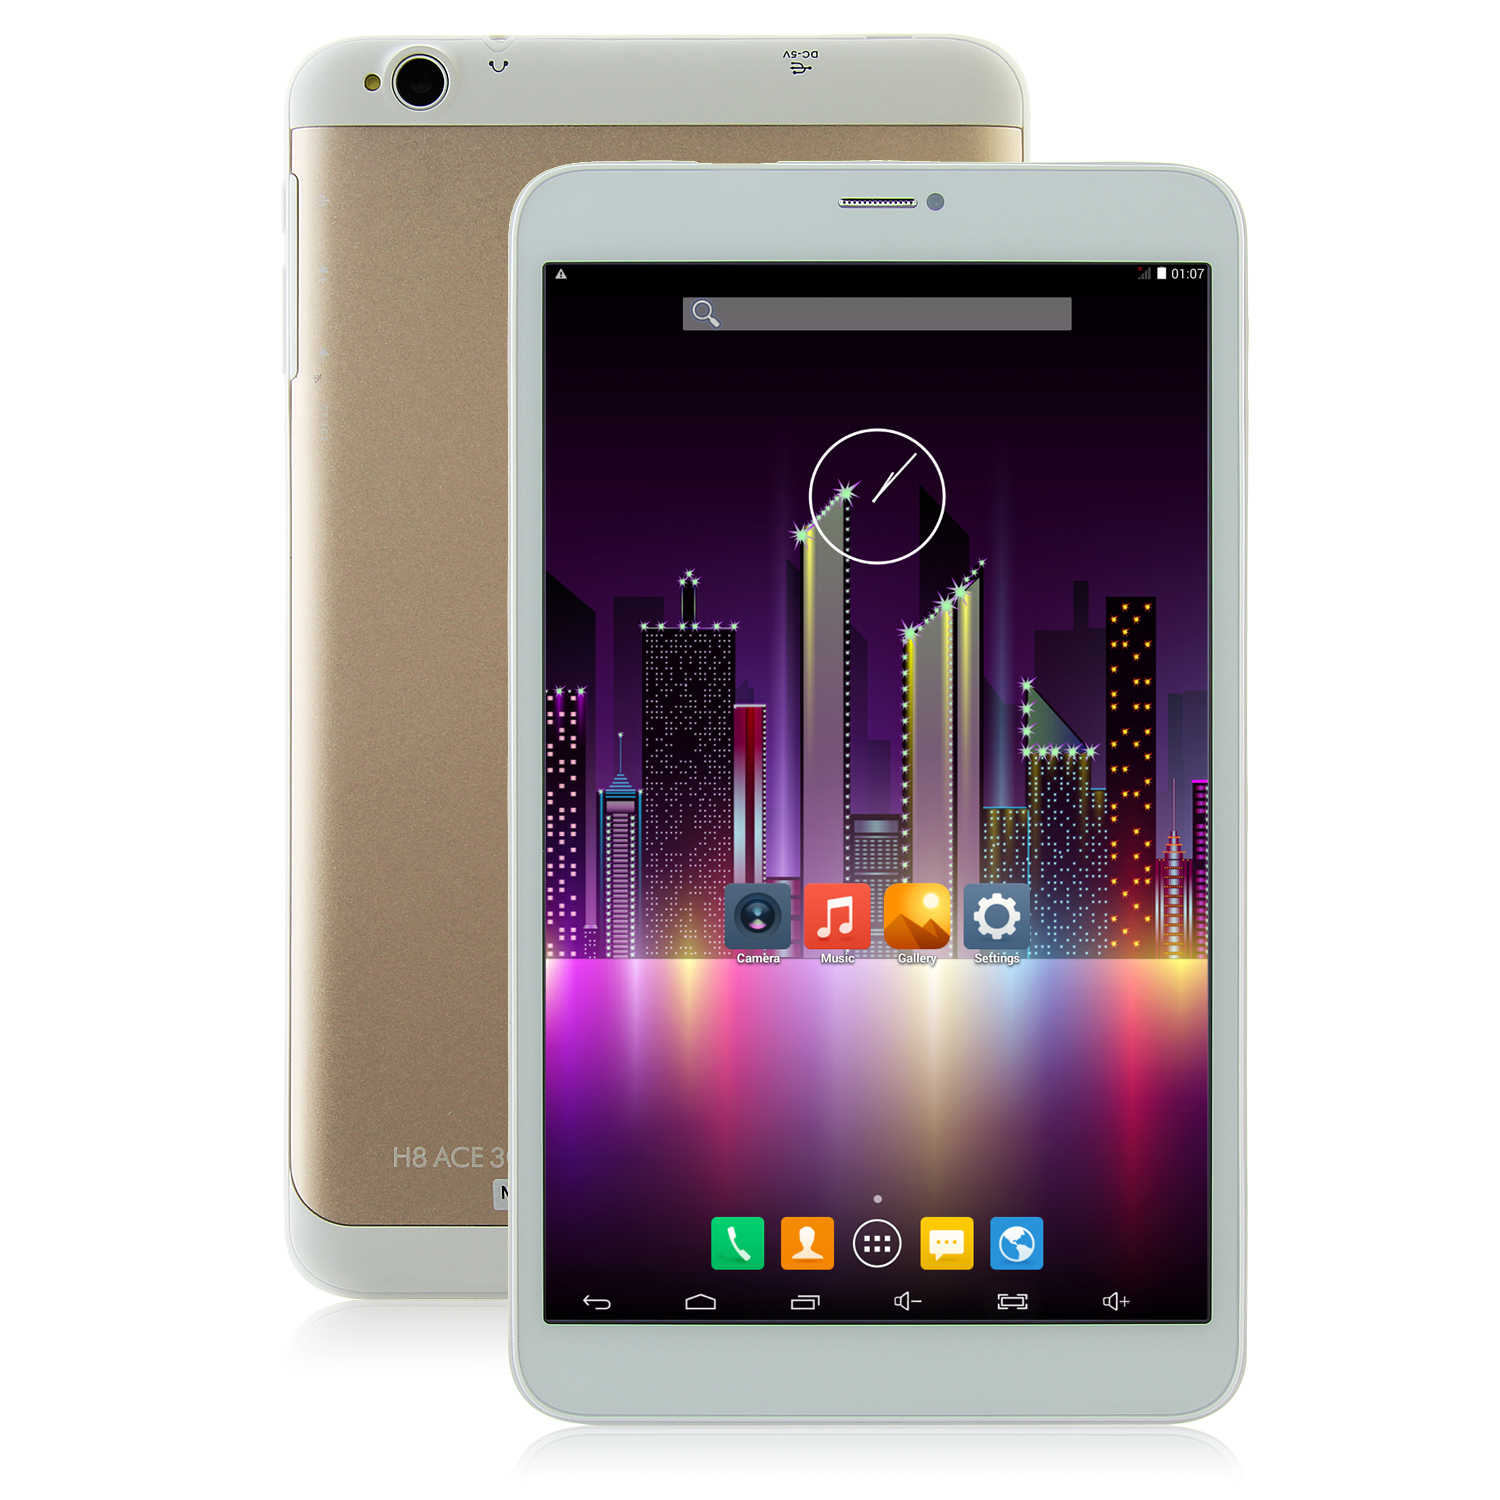 HUU 3G Tablet PC MTK8382 Quad Core Android 4.4 8.1 Inch IPS HD 1GB 8GB White&Golden